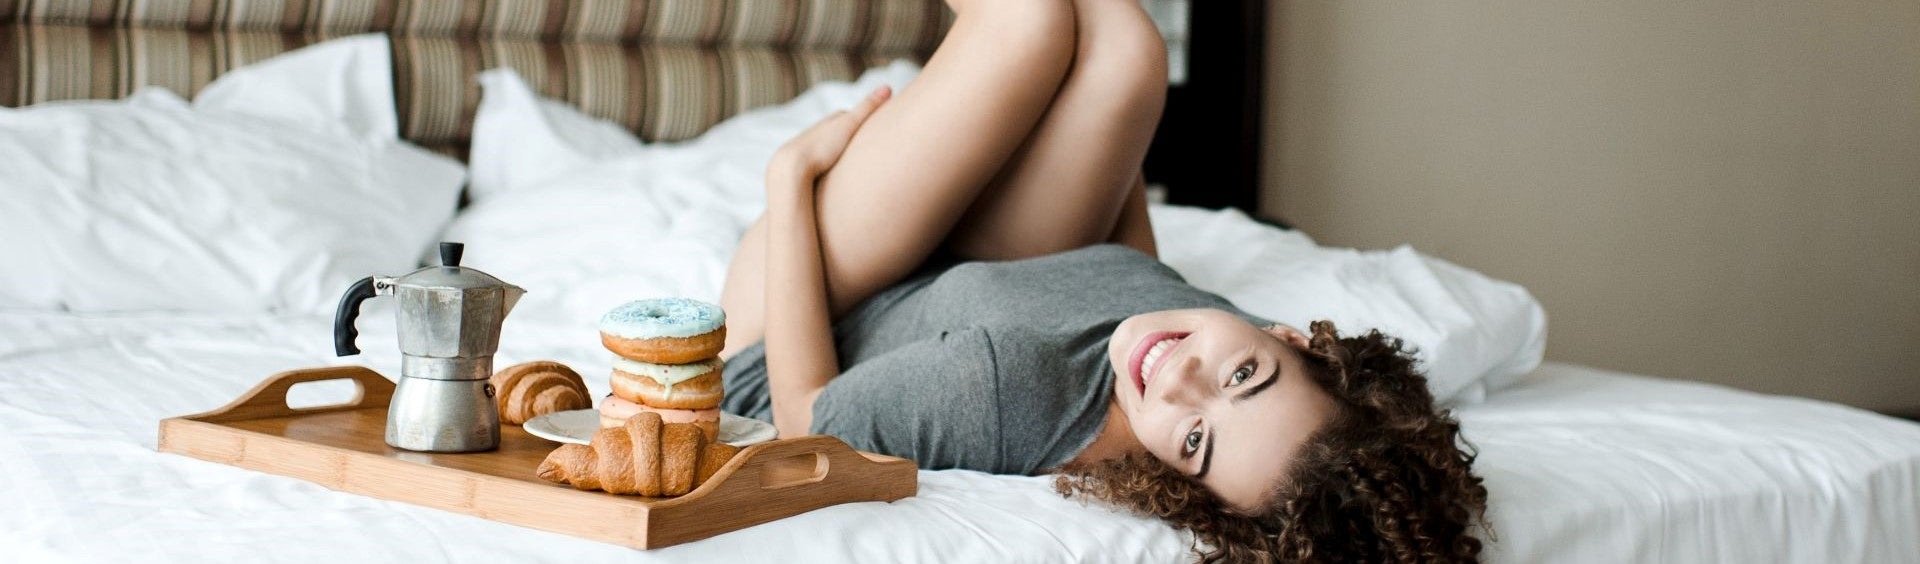 UK Super King Size Bedding - 6ft x 6ft 6